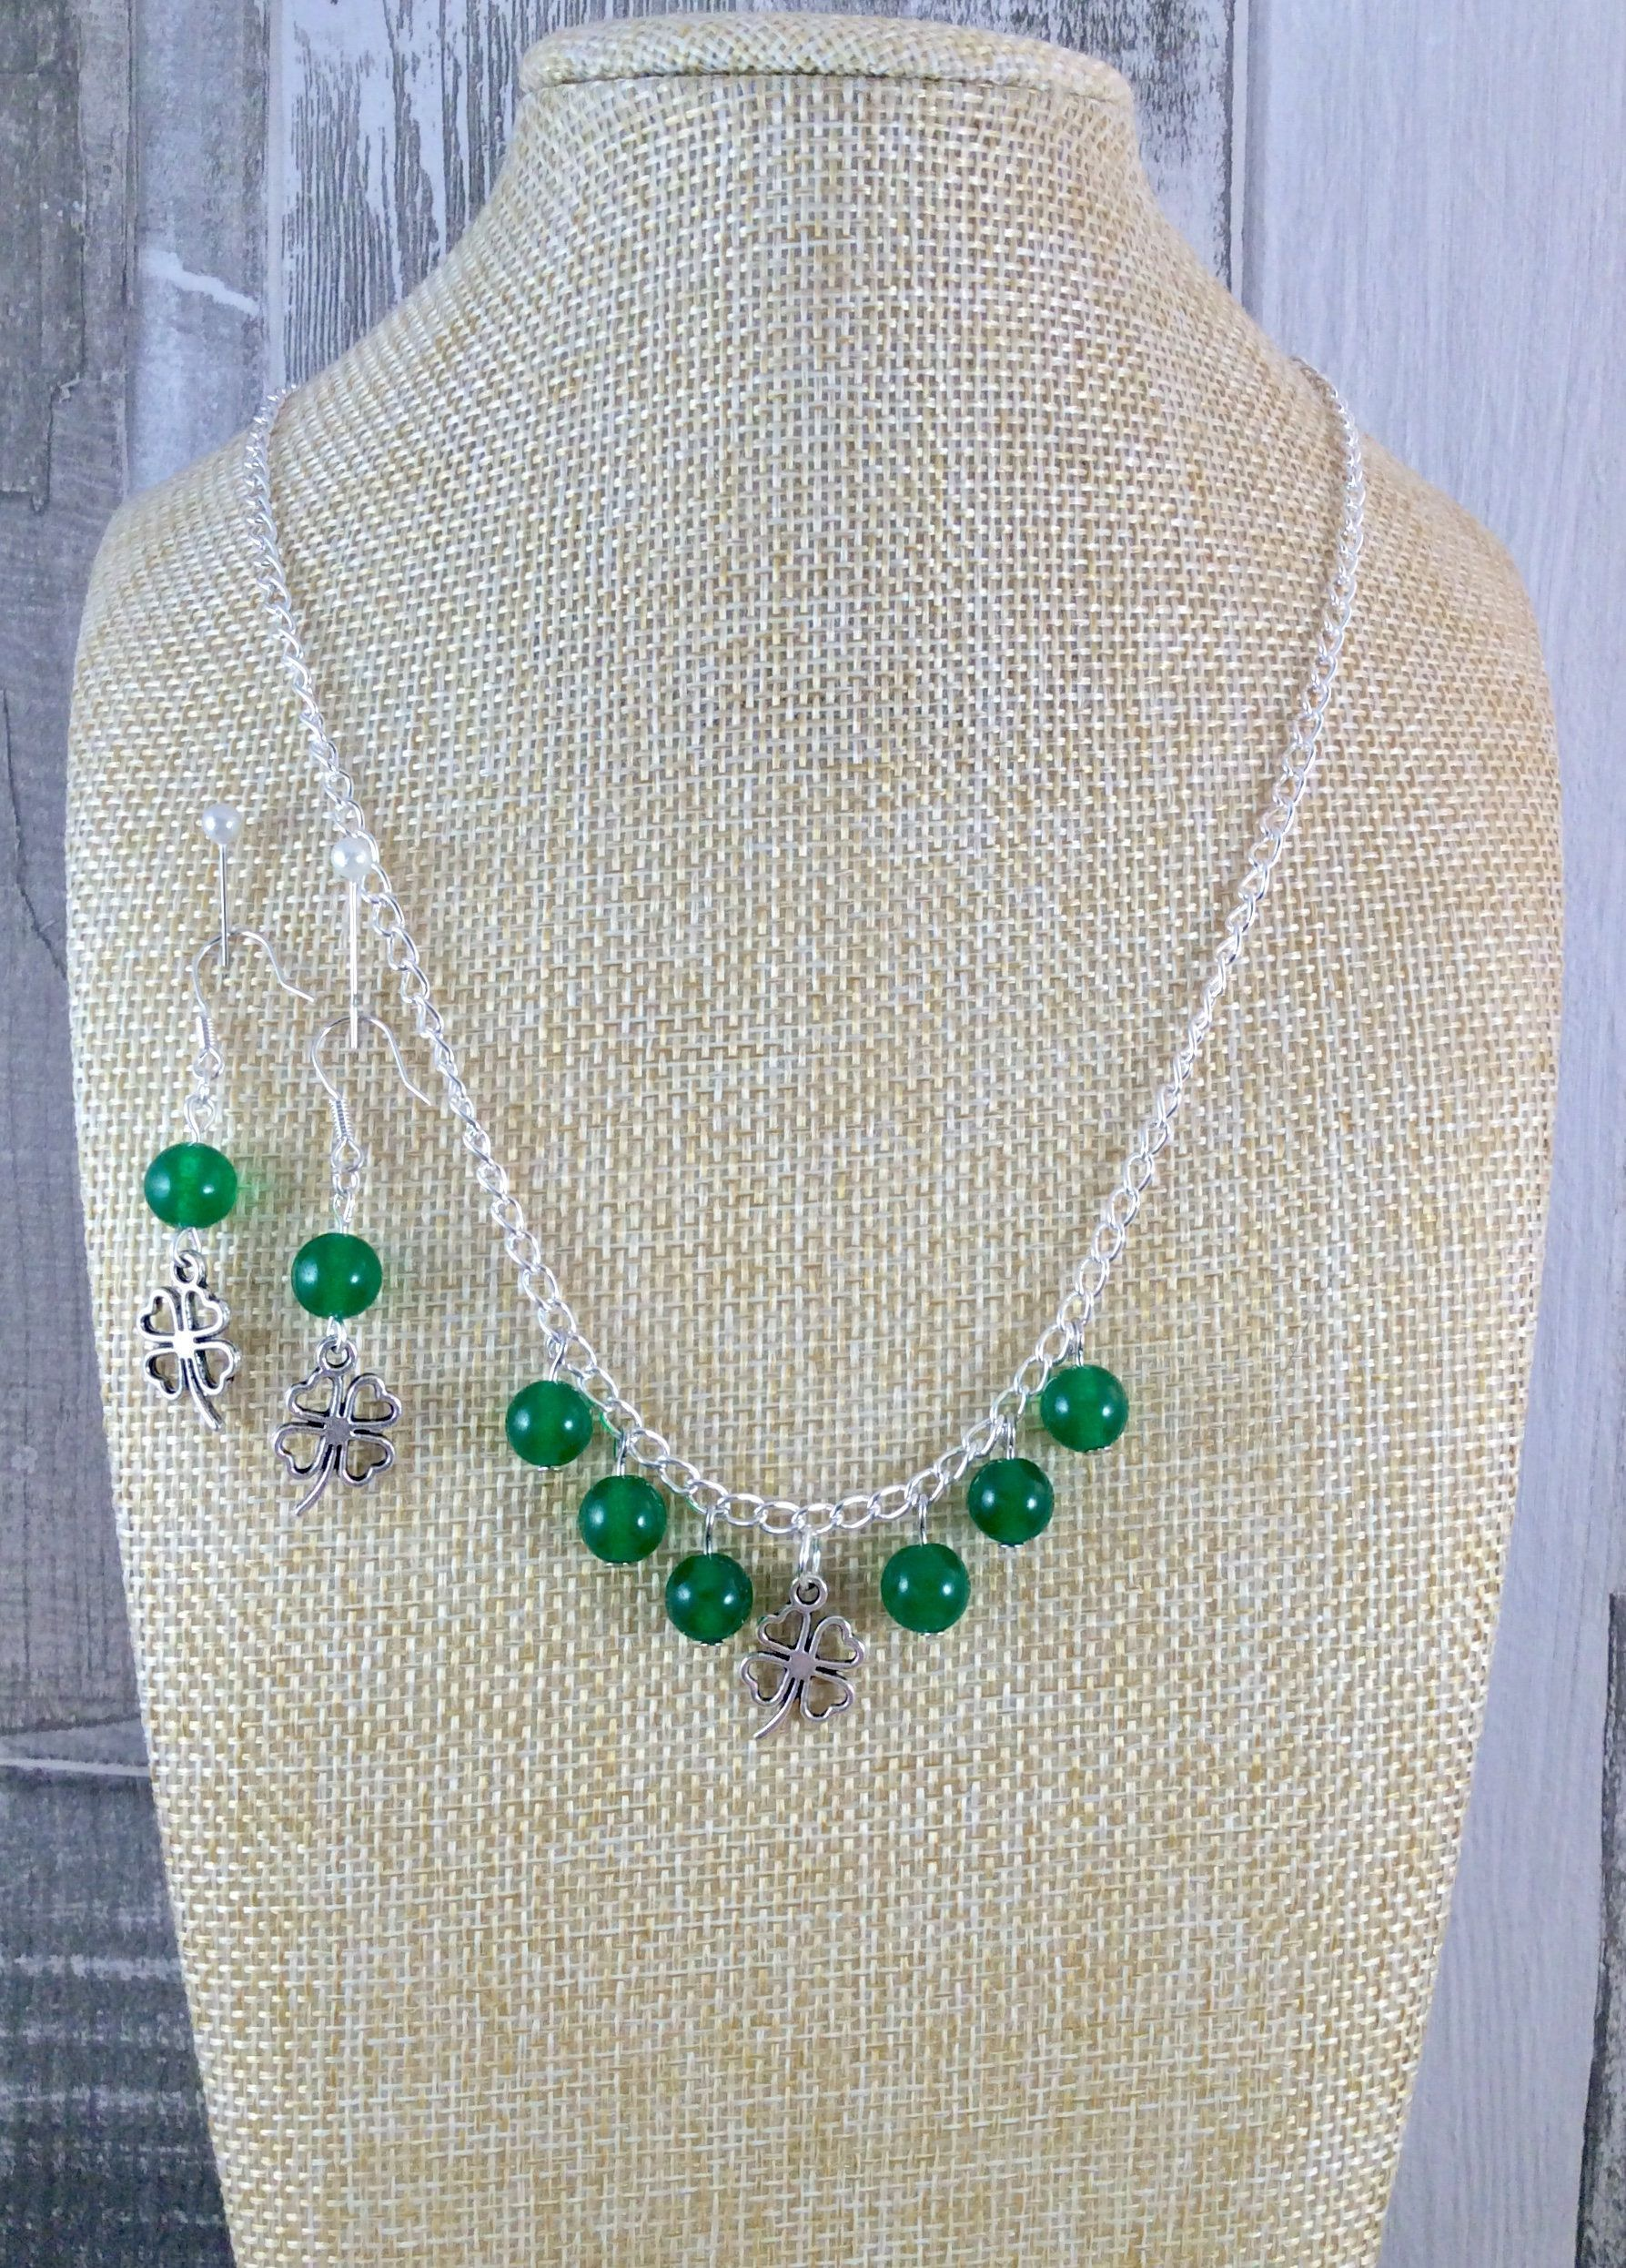 St patricks day saint patricks day green jewellery green necklace